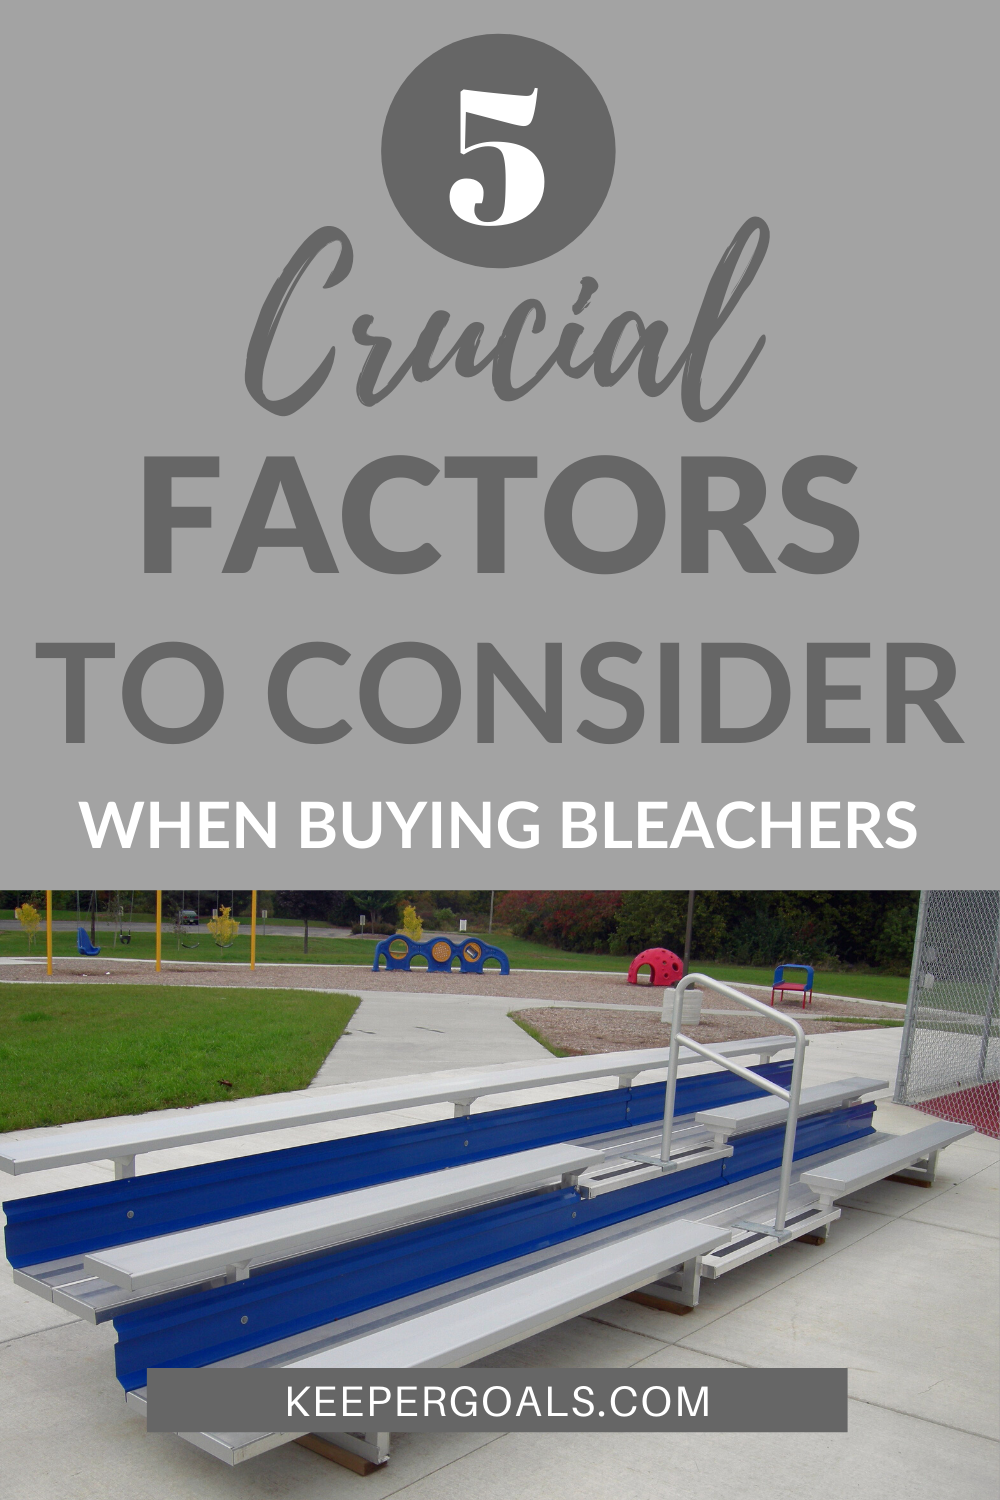 5 Critical factors to consider when buying aluminum bleachers for your park or athletic facility